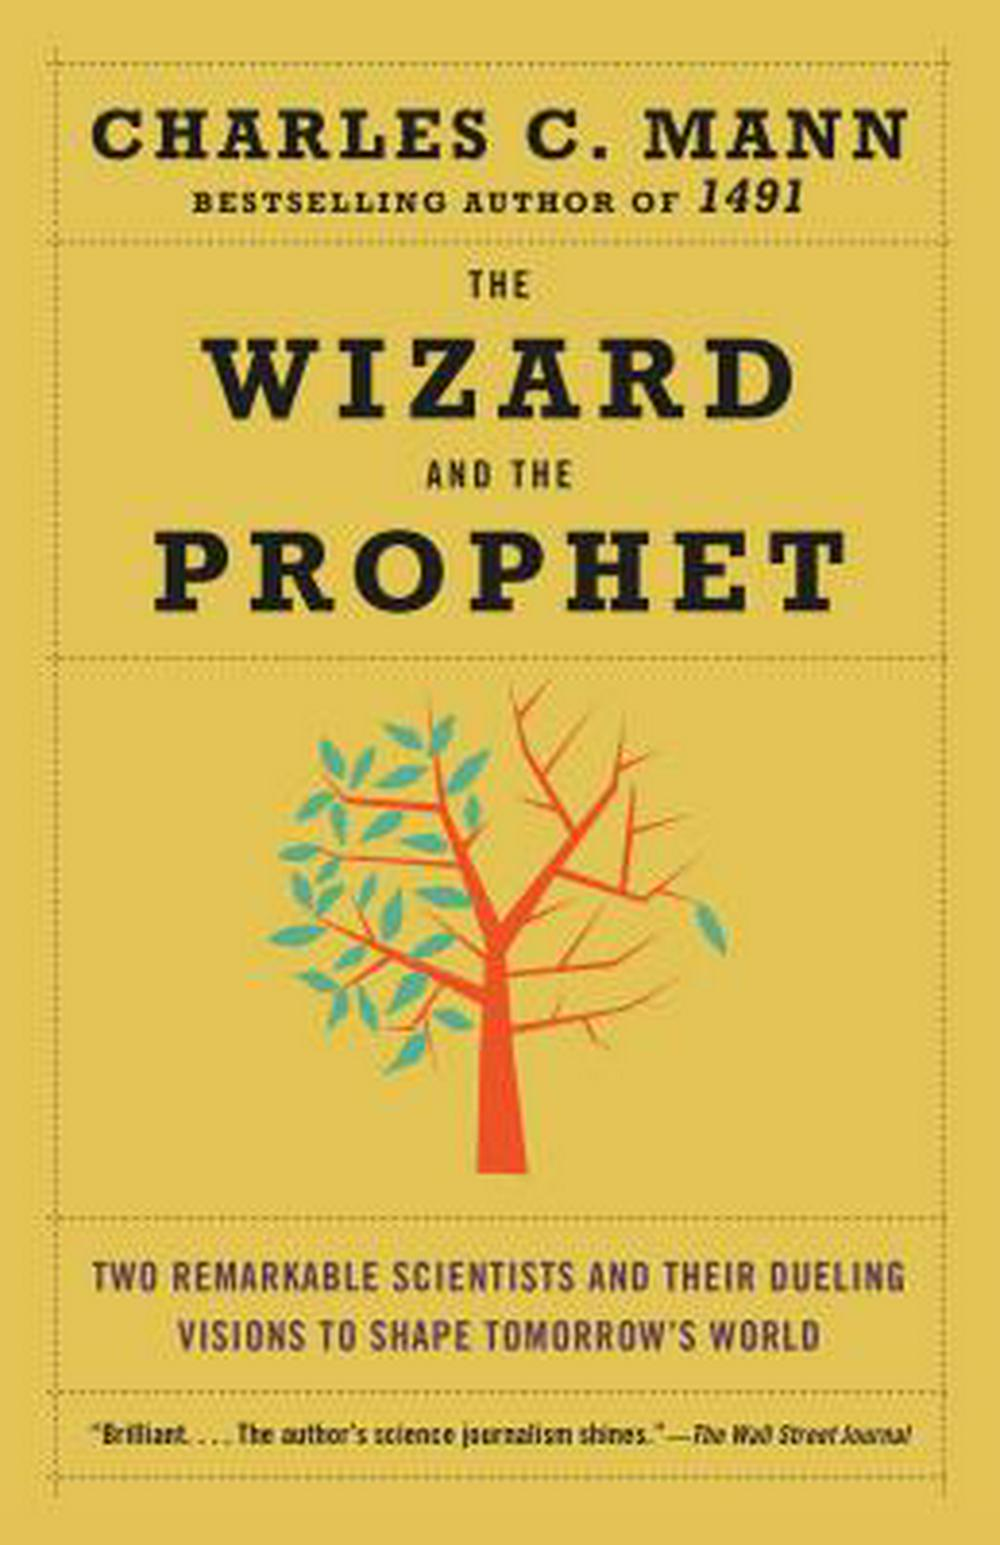 The Wizard and the Prophet: Two Remarkable Scientists and Their Battle to Shape Tomorrow's World